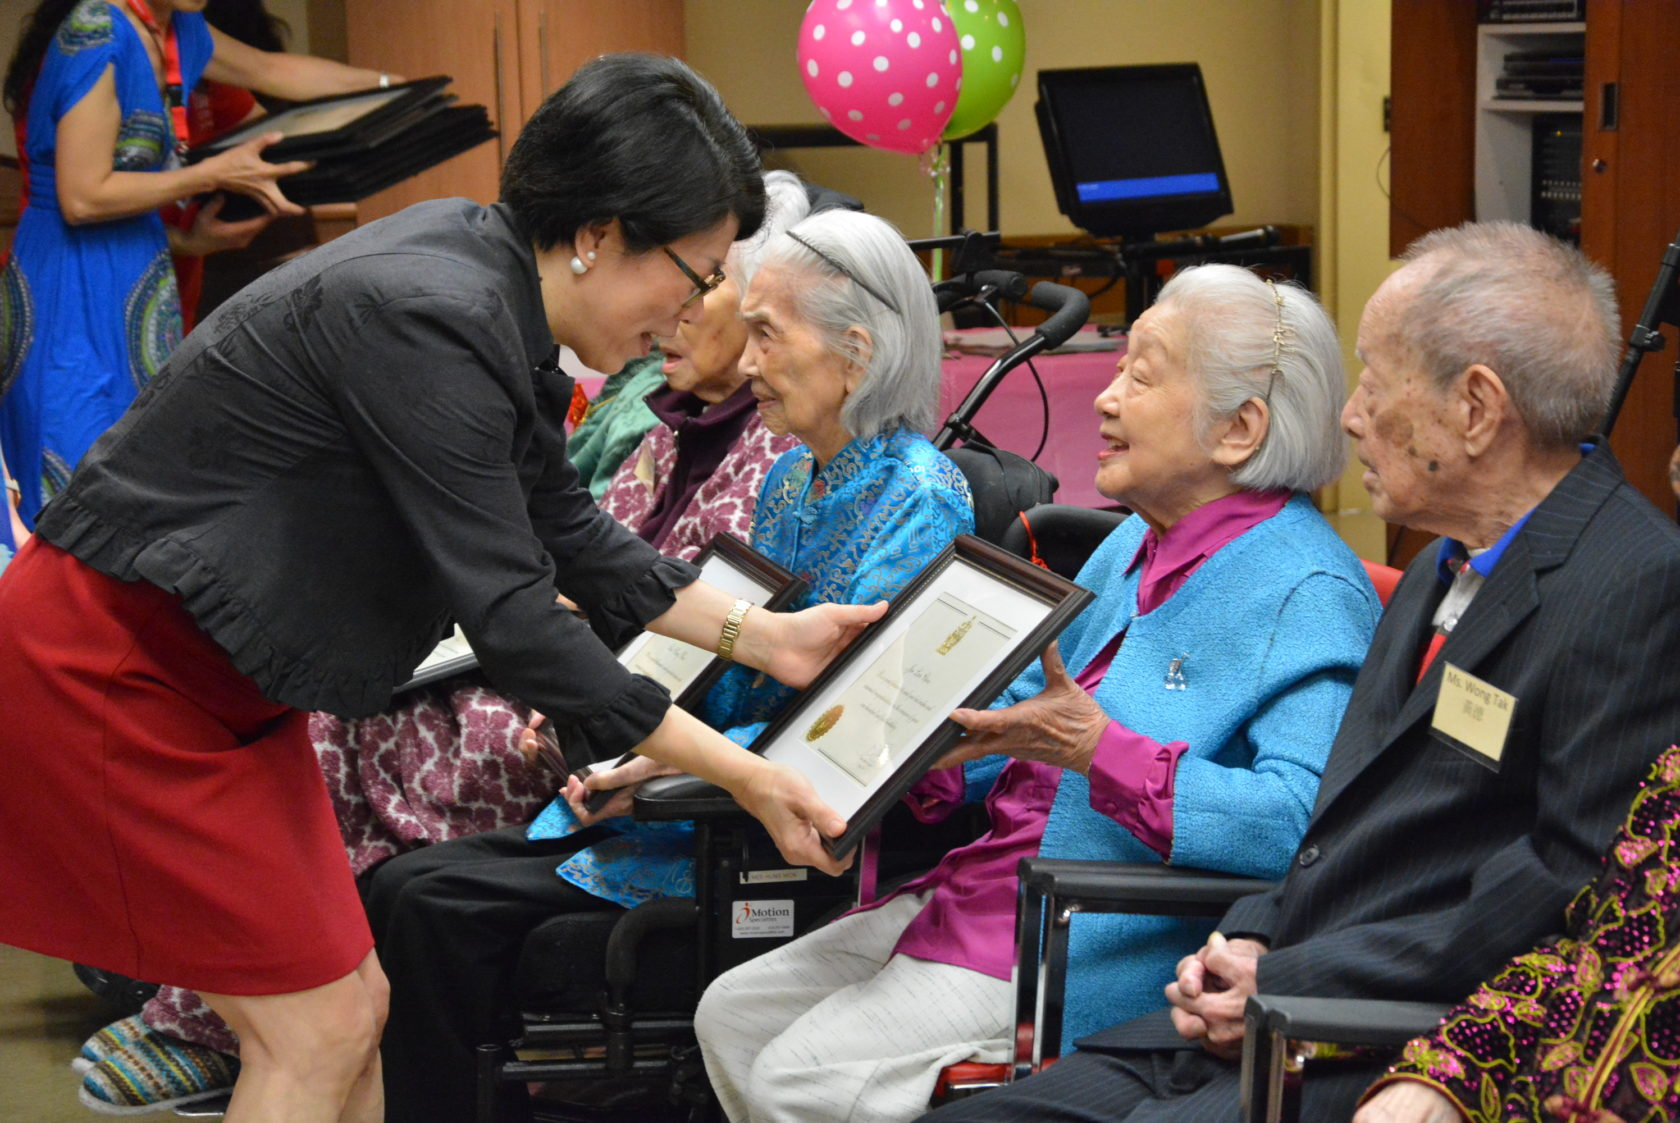 100th birthday party at Mon Sheong Home of the Aged with awards